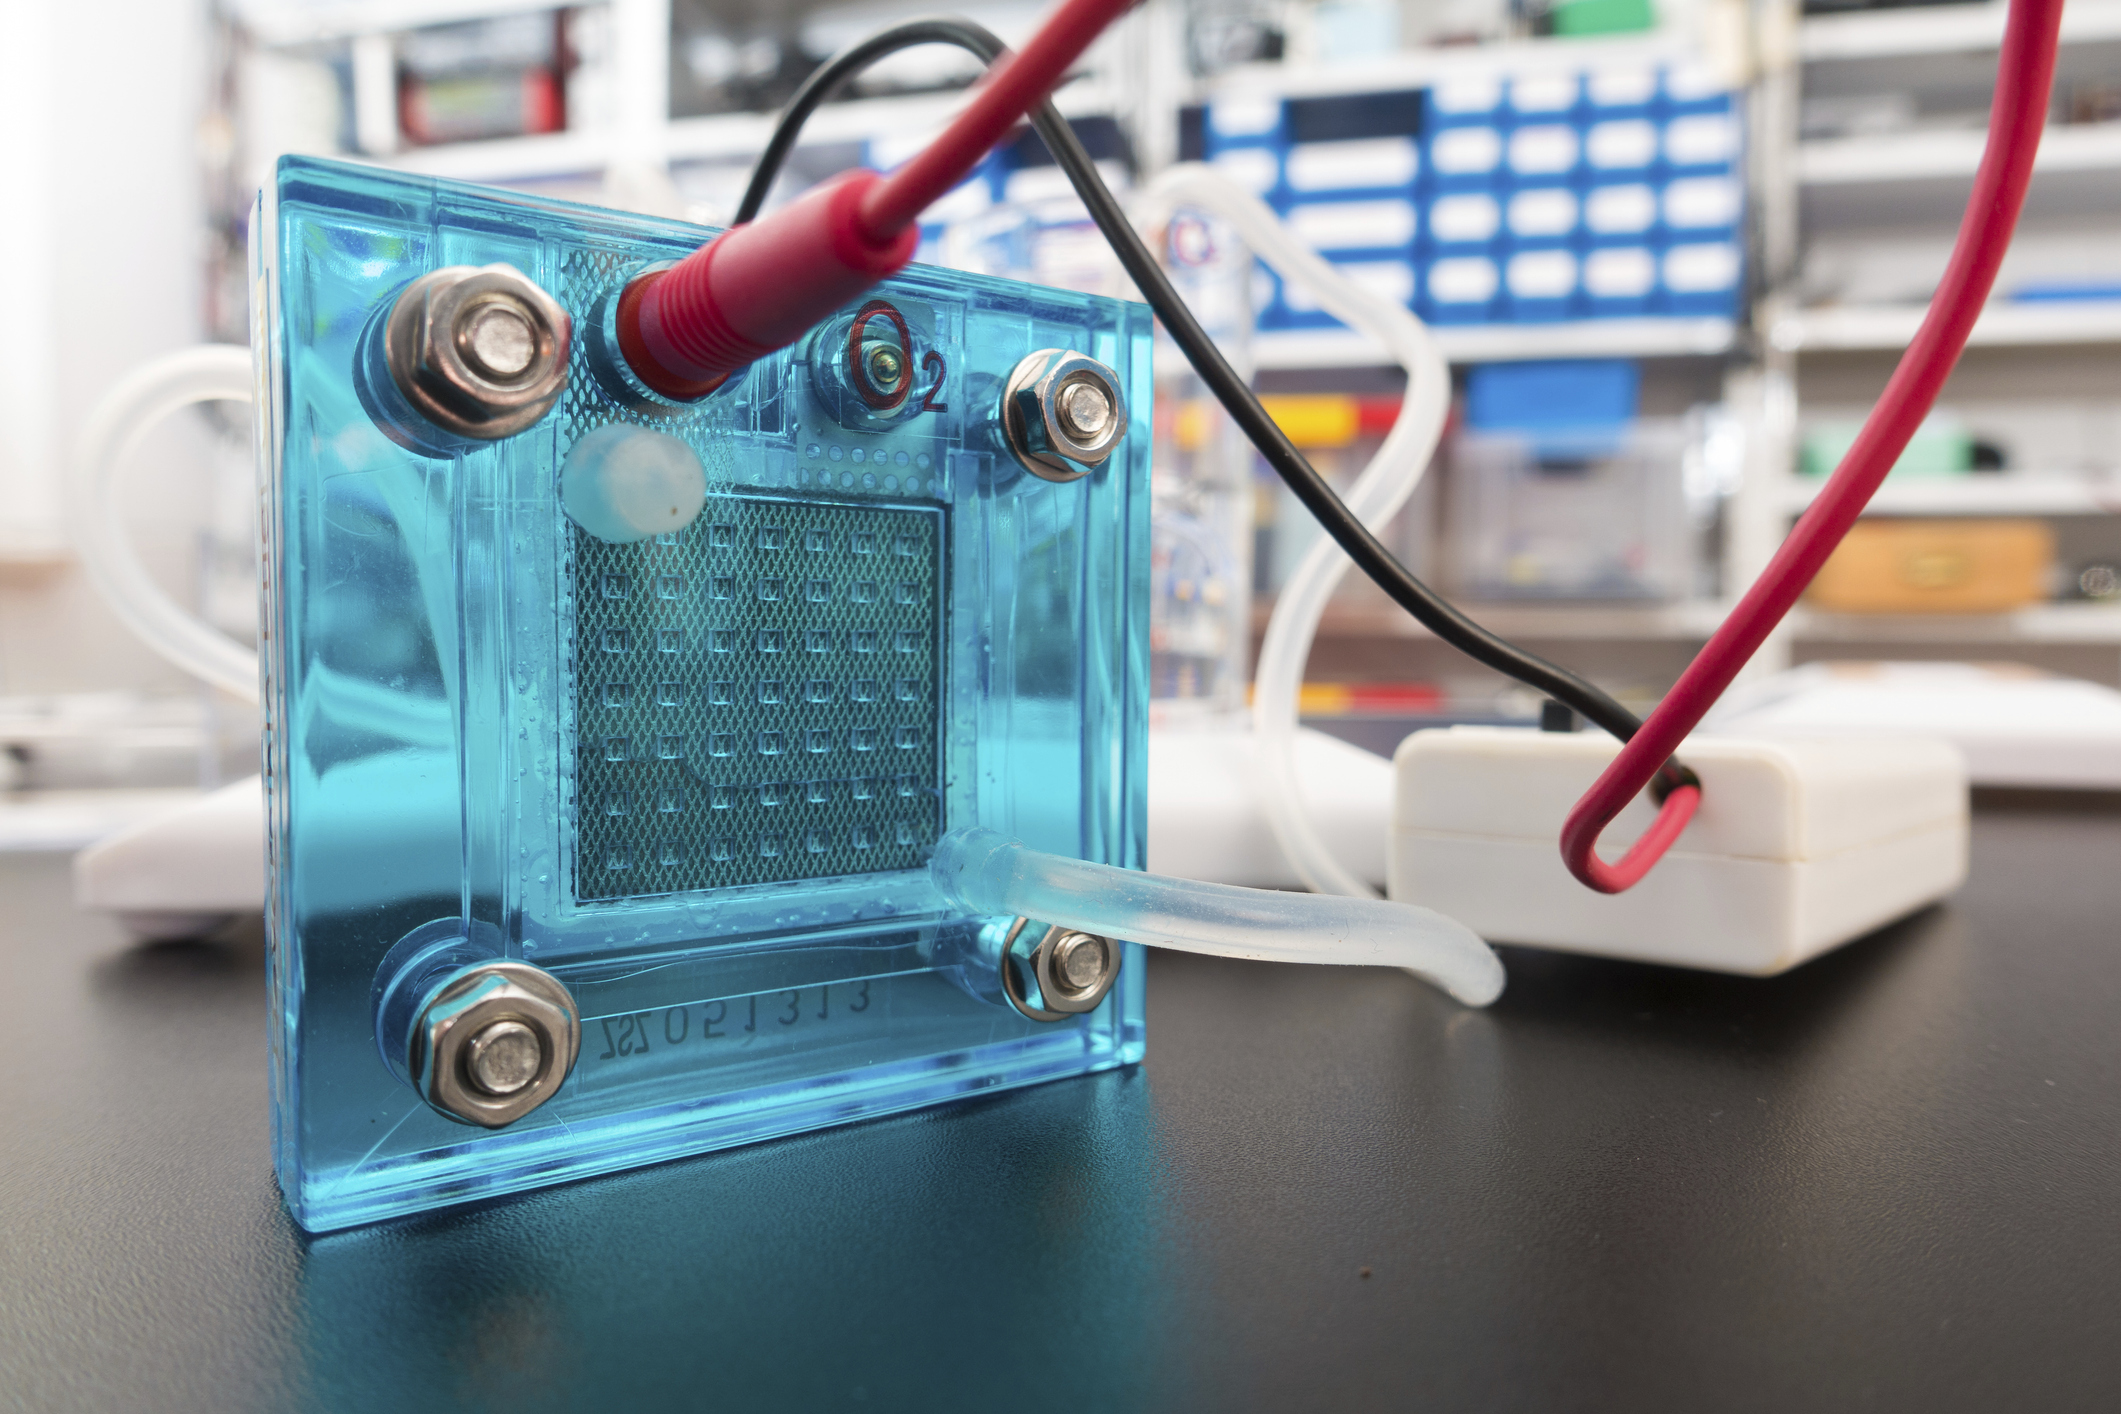 New Fuel Cell Material Can Run Efficiently In Reverse Storing Energy